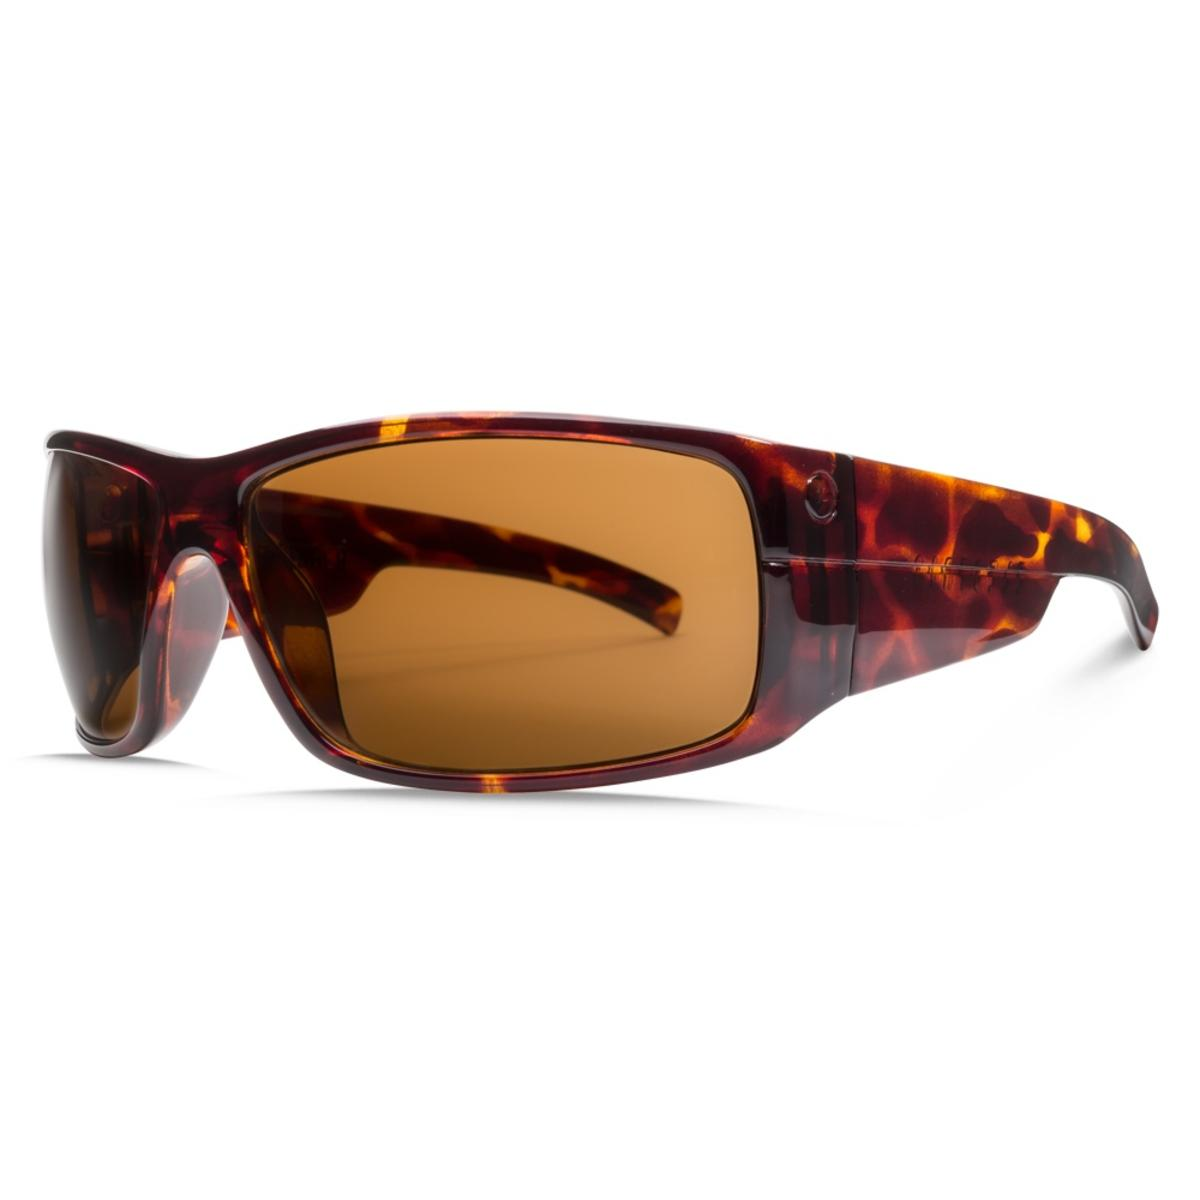 Electric Mudslinger Men's Sunglasses